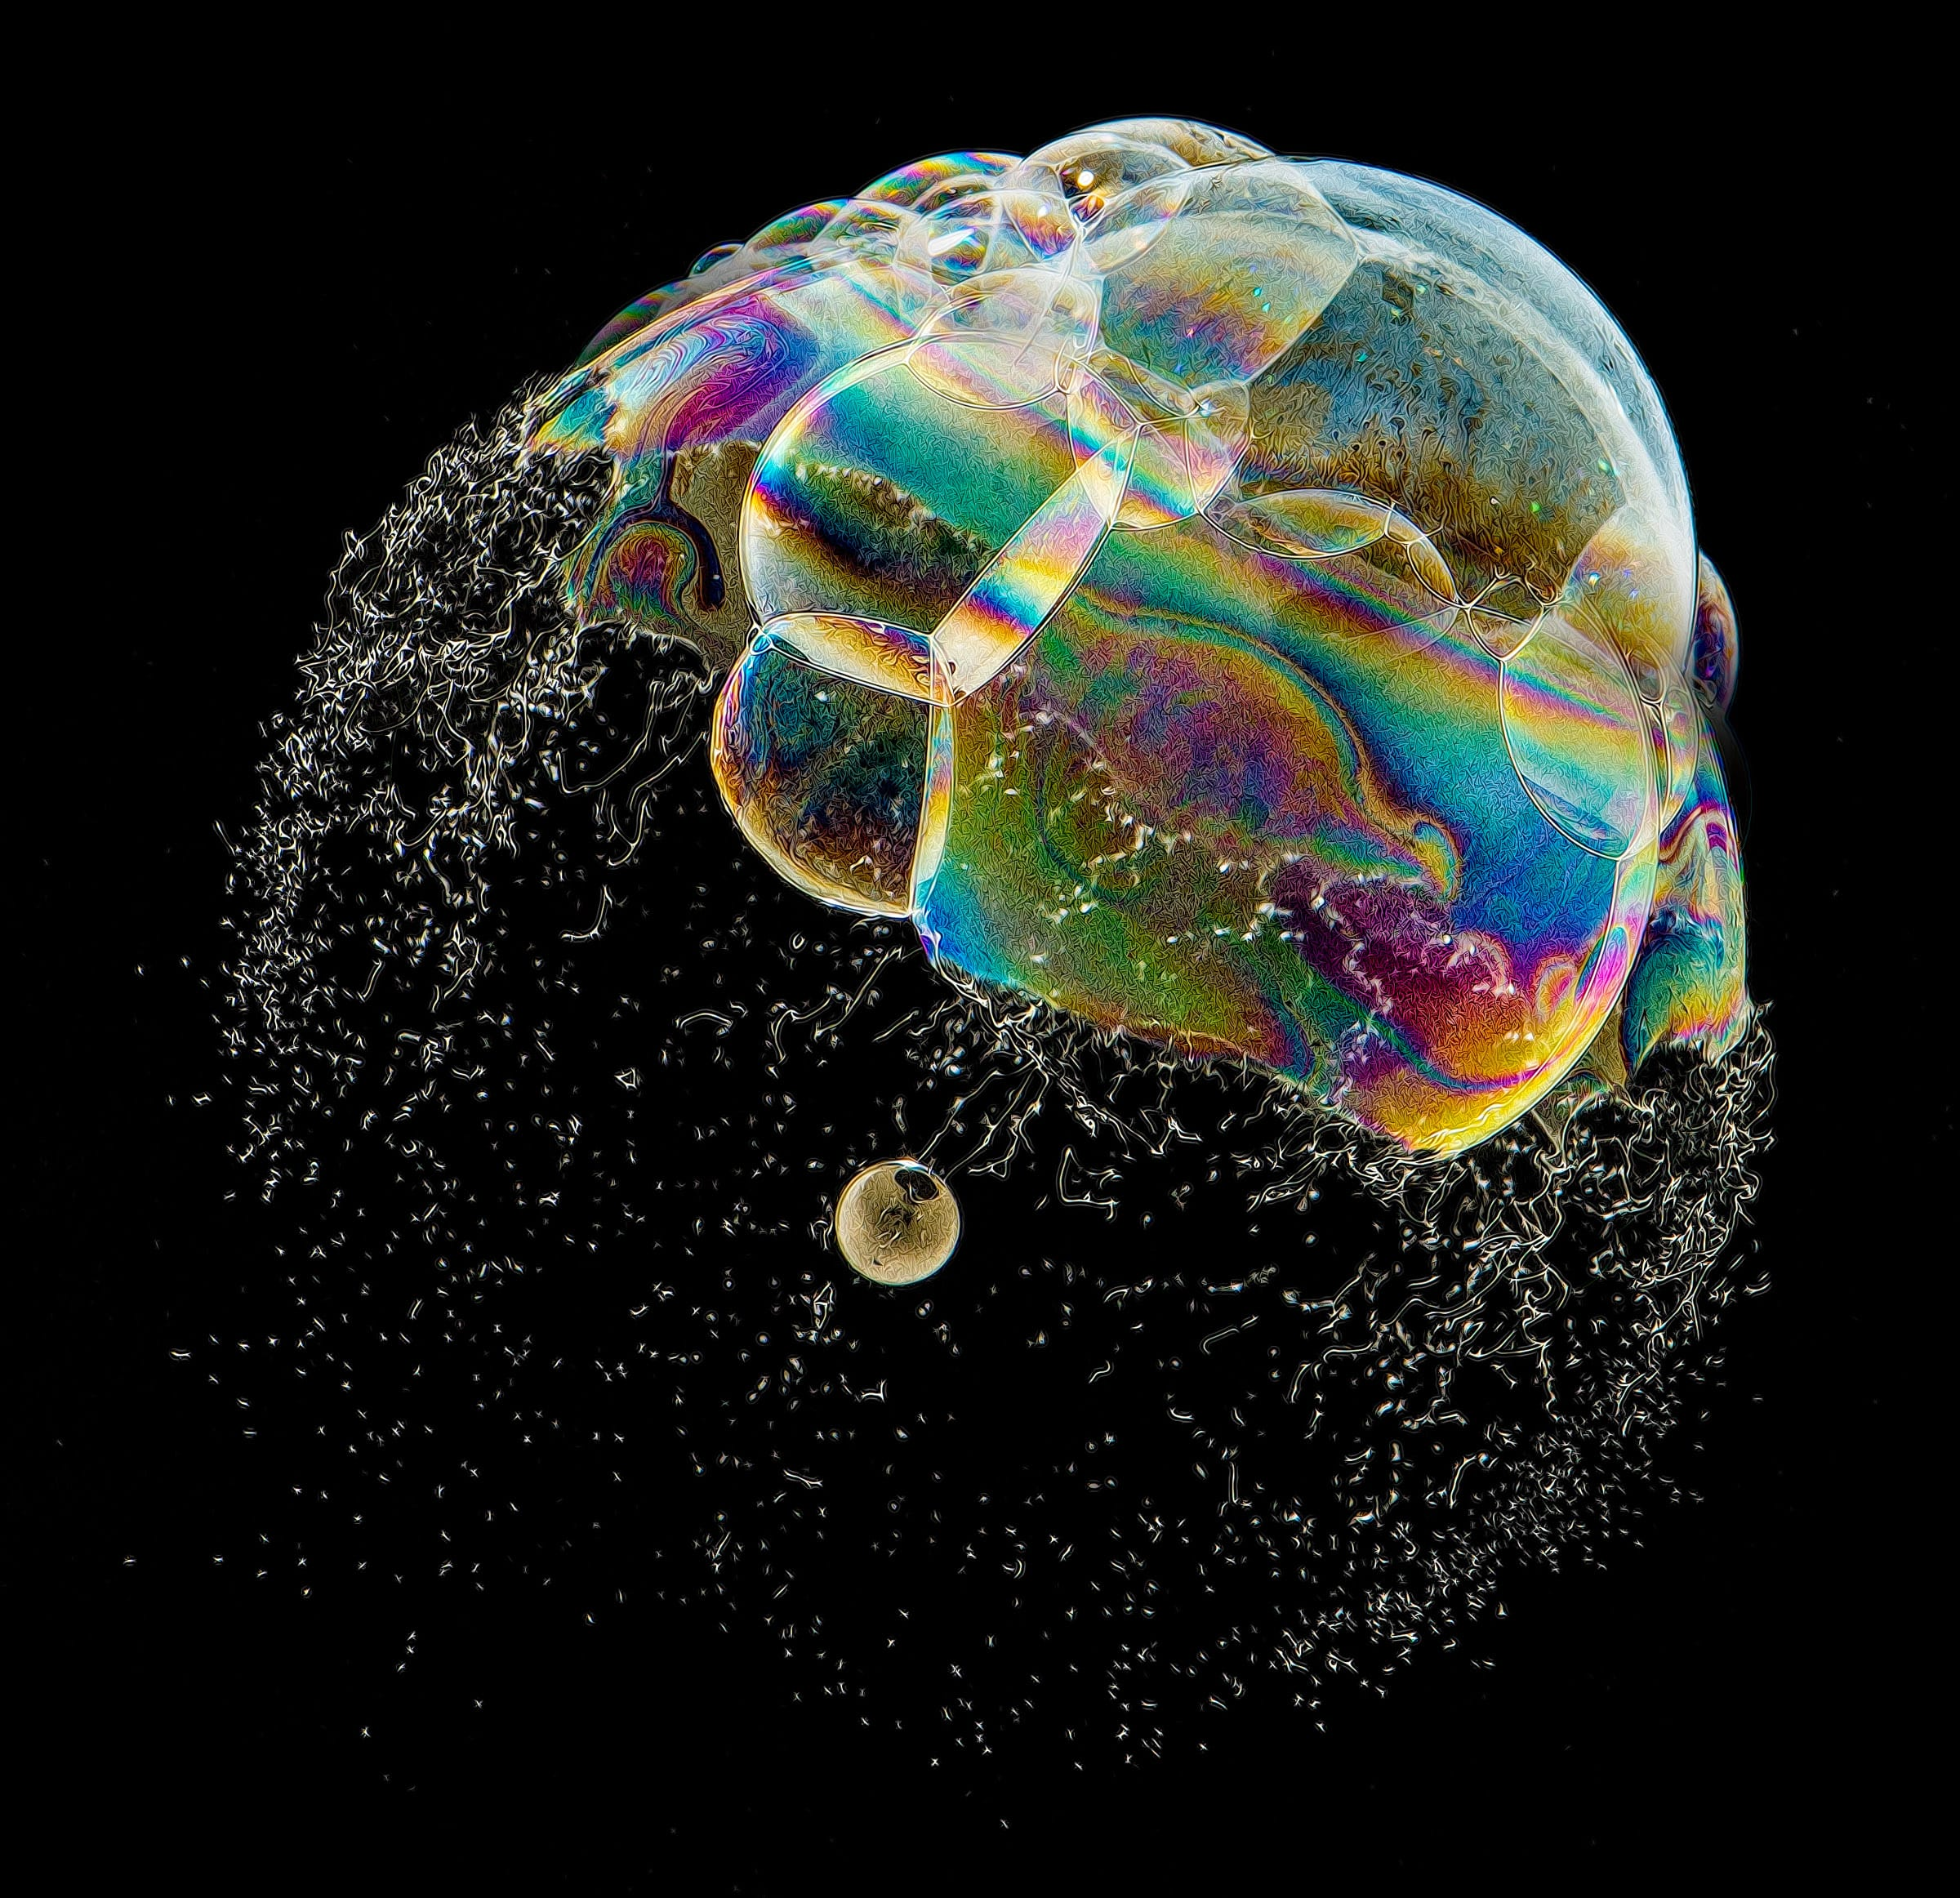 A colorful compound soap bubble in the process of bursting.